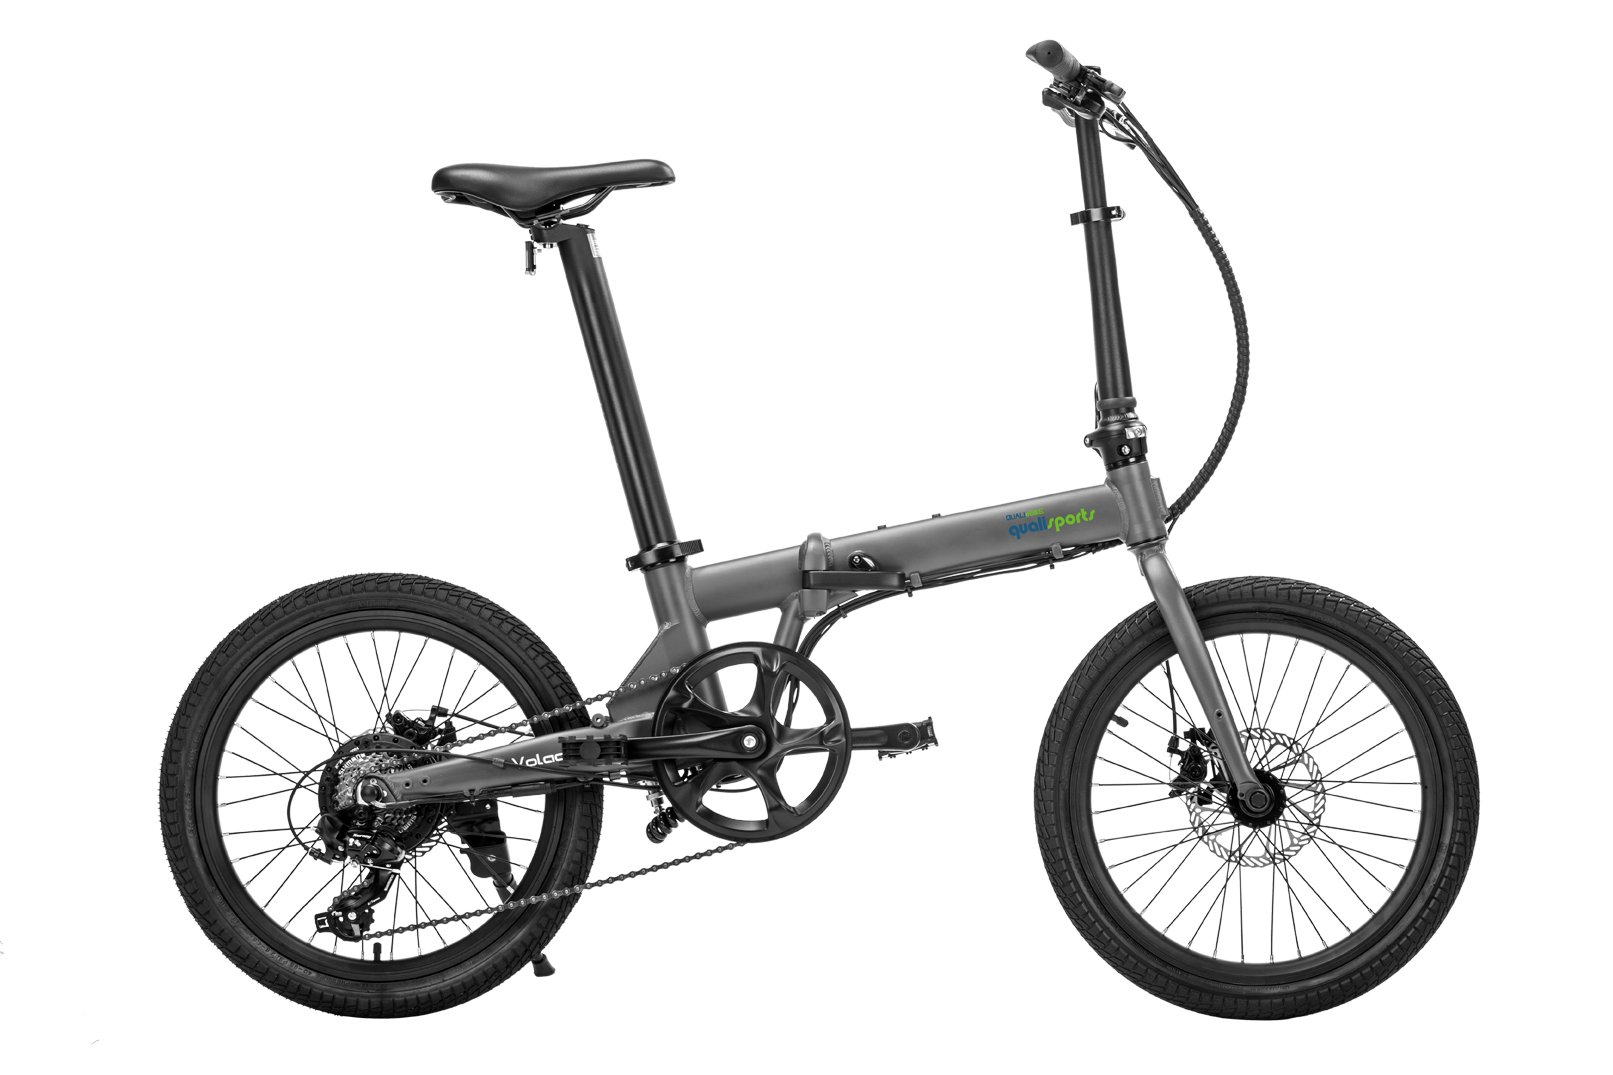 "Qualisports Volador-20""TIRE Folding Electric Bike Grey $1099   Qualisports crafted the ""Volador"" after years of feedback from our NEMO customers.  The Volador is our 20"" Electric-bike, which weights only 38.5lbs. It effortlessly folds down to 32.68"" x 15.75″ x 26.38″ compact size. It features 20 x 1.95"" tire, and a Shimano 7-speed mechanical gear shifting in addition to an electronic 5 level shifting capability.  As with our ""Nemo"" Bikes, Quali-bikers can easily store the Volador in tight out of the way places in apartments, closets, under your work desk, in an RV, a boat or even on your own plane. The Volador features an easy to read on-board multifunctional LCD display. It will comfortably accommodate a cyclist from 5′ to 6'3″ tall.  The Volador can be ridden in four different modes:  As a normal bike, (PAS) Pedal Assist mode, Cruise control mode, or enjoy an effortless riding experience with a simple press of a trigger throttle to help you get over a hill.  The Volador has an efficient and strong 350W brushless geared motor which will assist you to overcome an 18-degree climb effortlessly. Our patented stylish and stealthy seat post design is practical and hides our batteries (Samsung 252WH). The Volador will give the Quali-biker's 30miles range on a single charge."